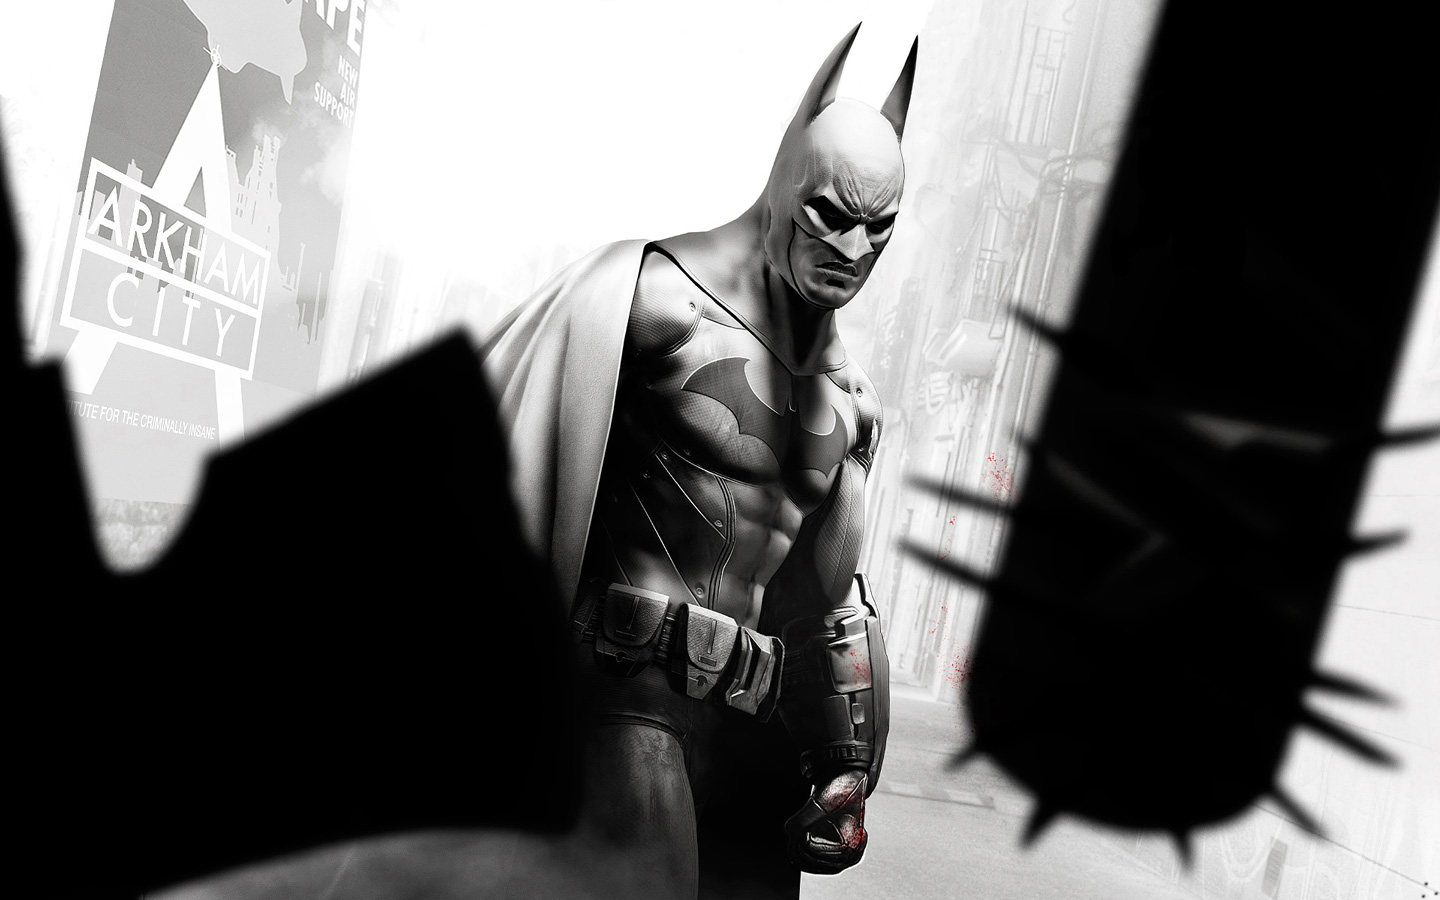 Free Batman: Arkham City Wallpaper in 1440x900